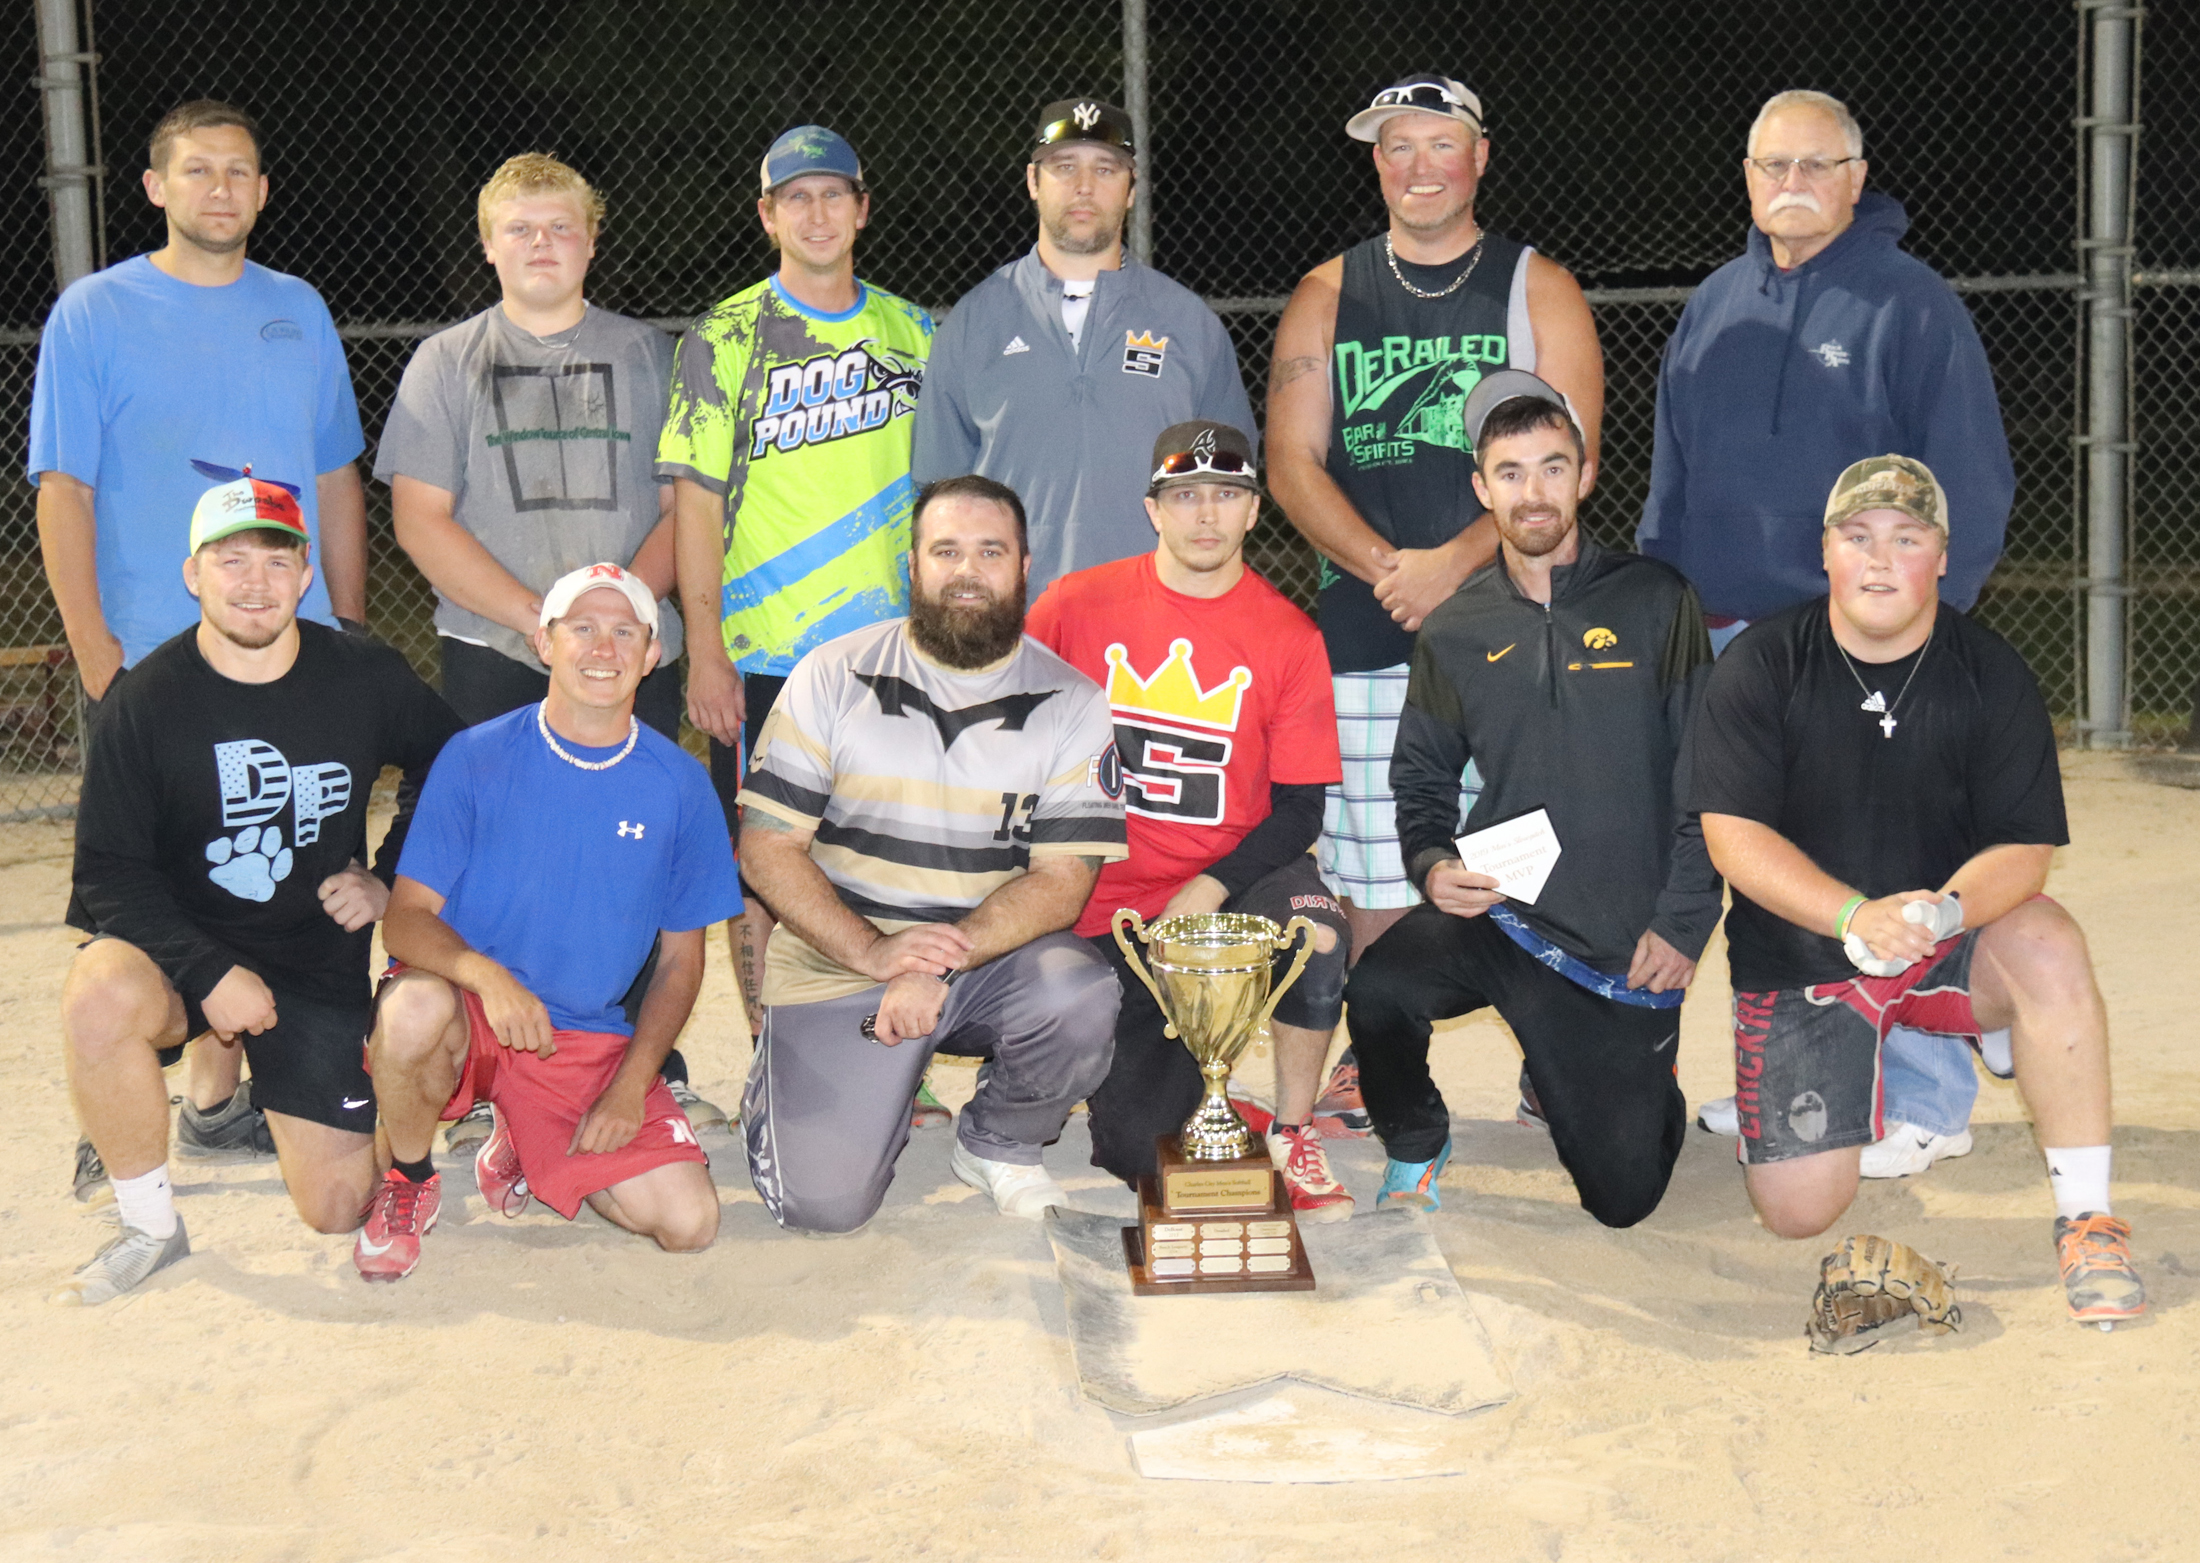 Busch Leaguers 'DeRailed' in trying to repeat as CC Men's Softball League champs